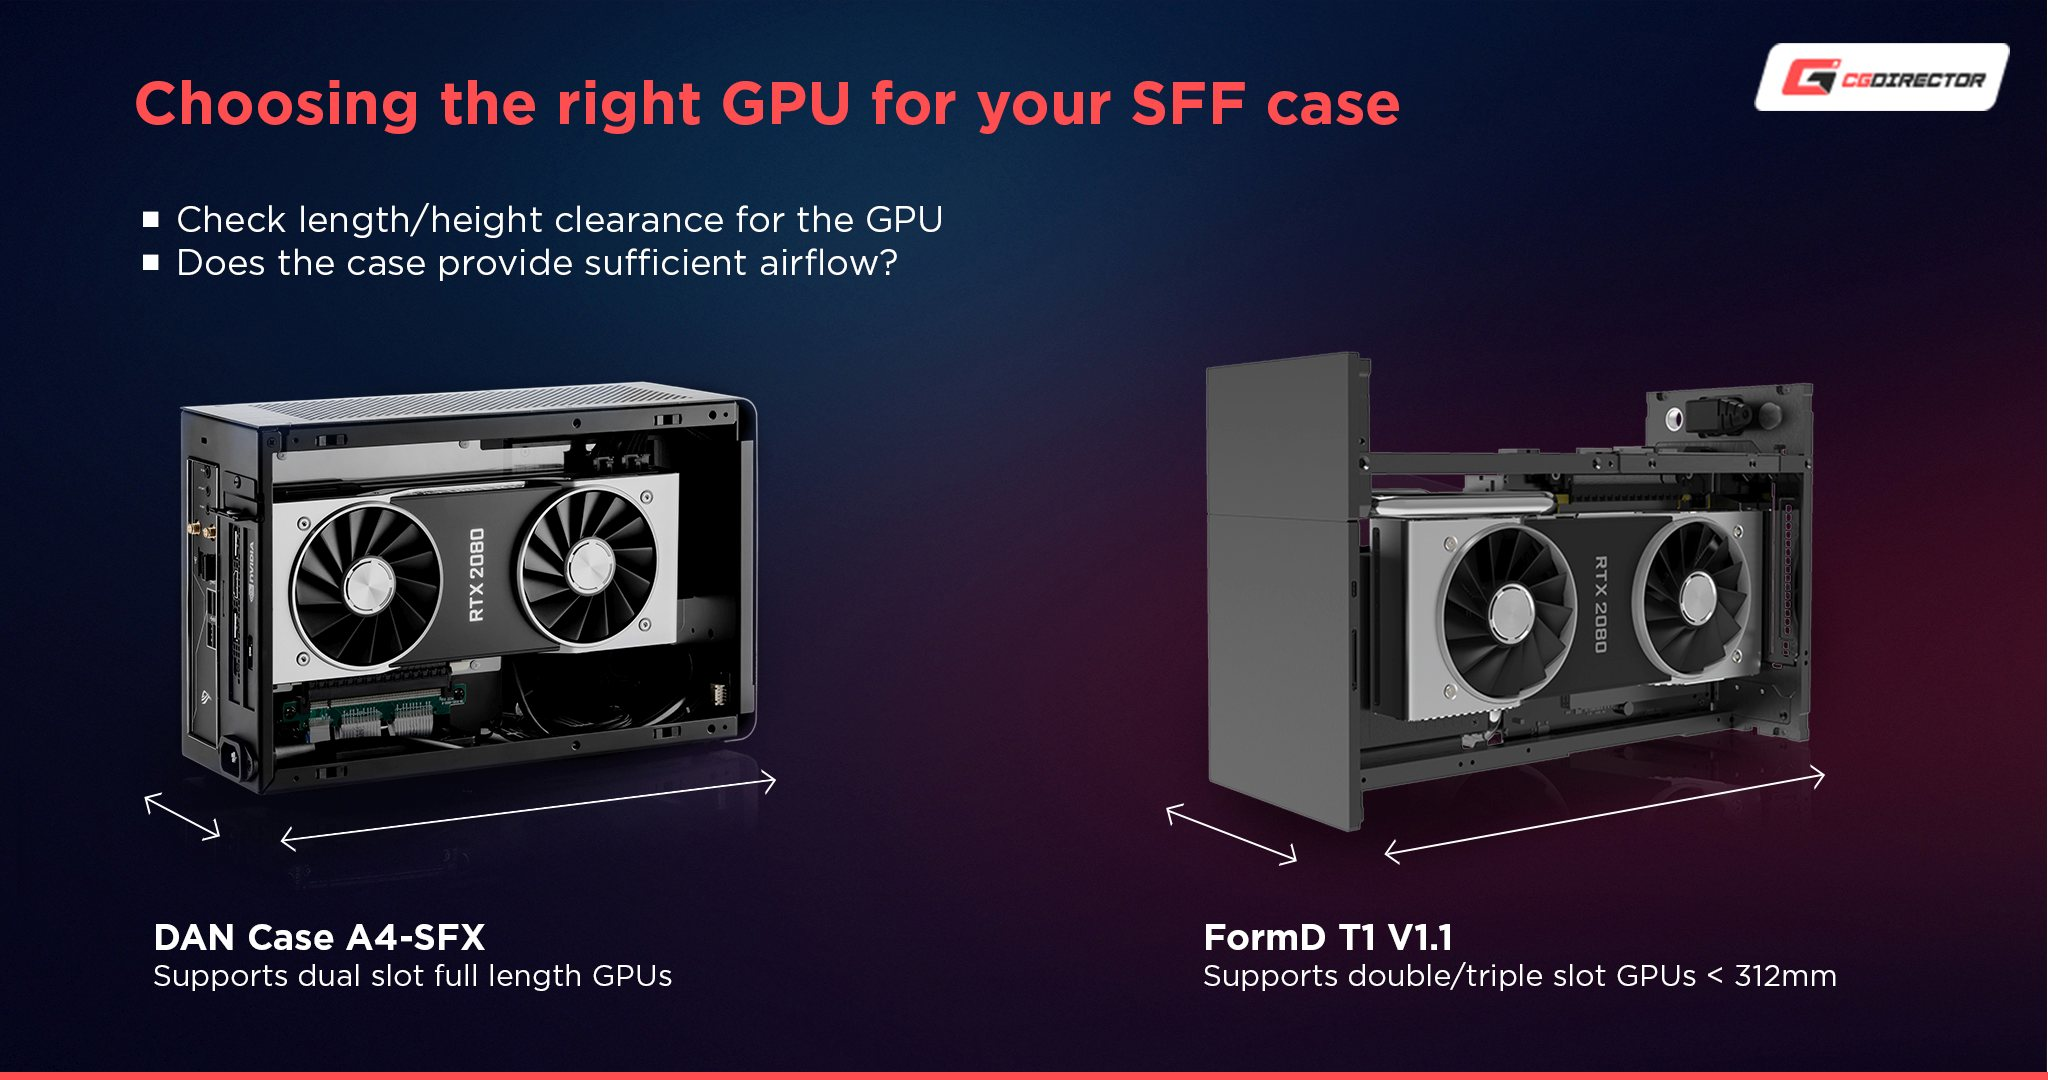 Choosing the right low profile GPU to fit into a sff pc case